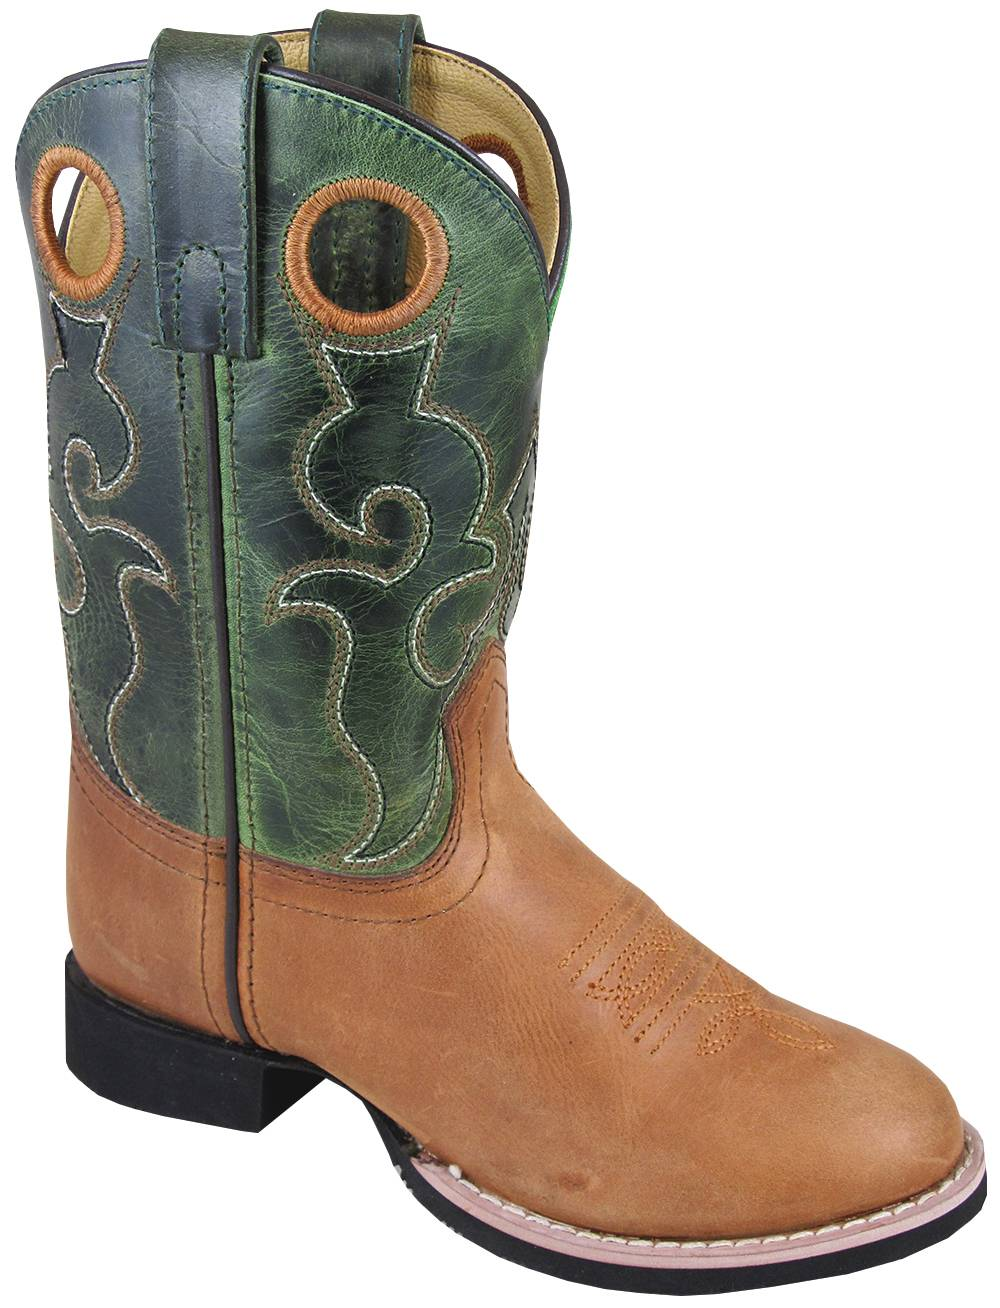 Smoky Mountain Rick Boots - Youth - Tan/Green